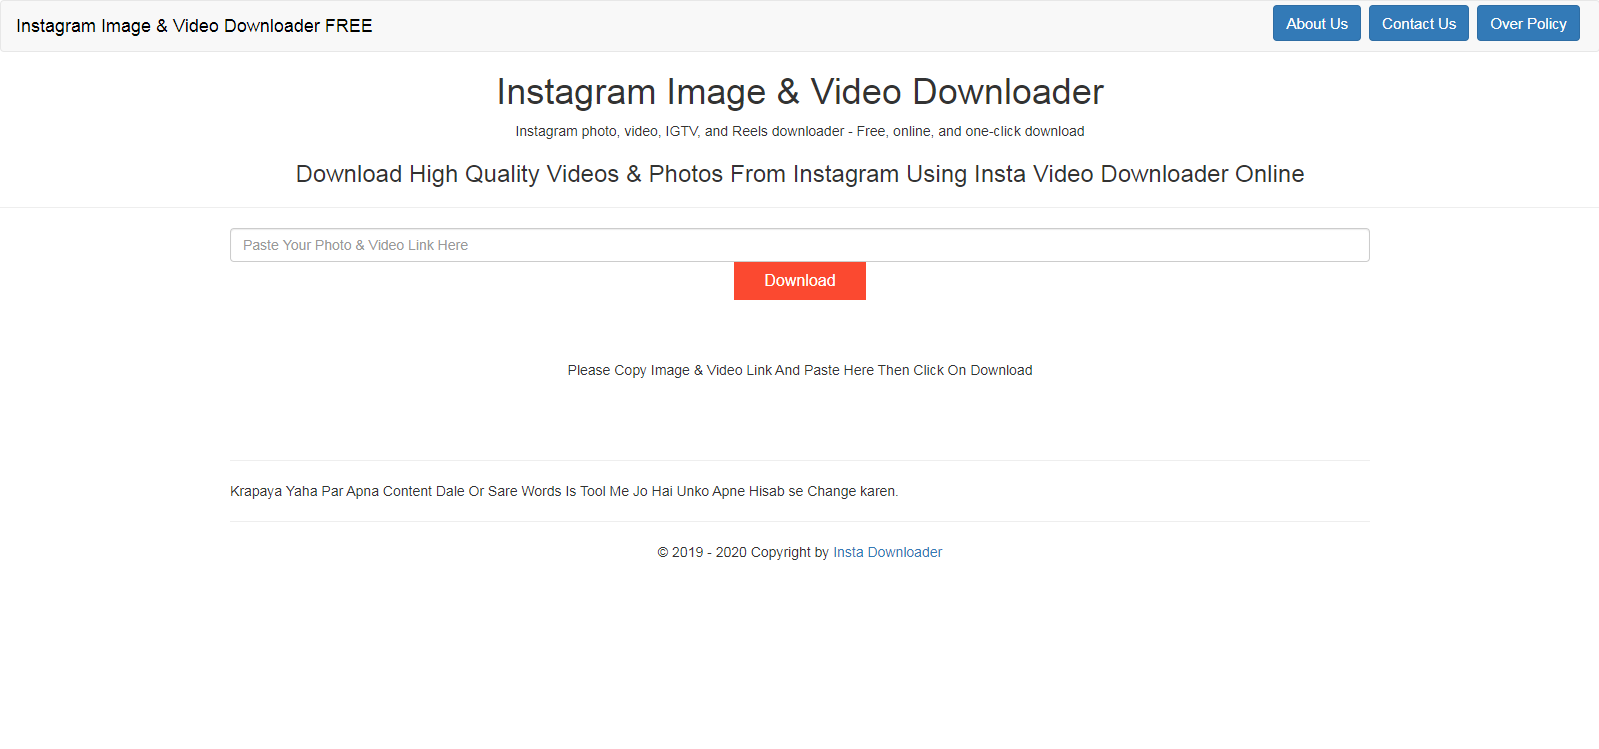 How To Download Instagram Photos - Free Tools Online